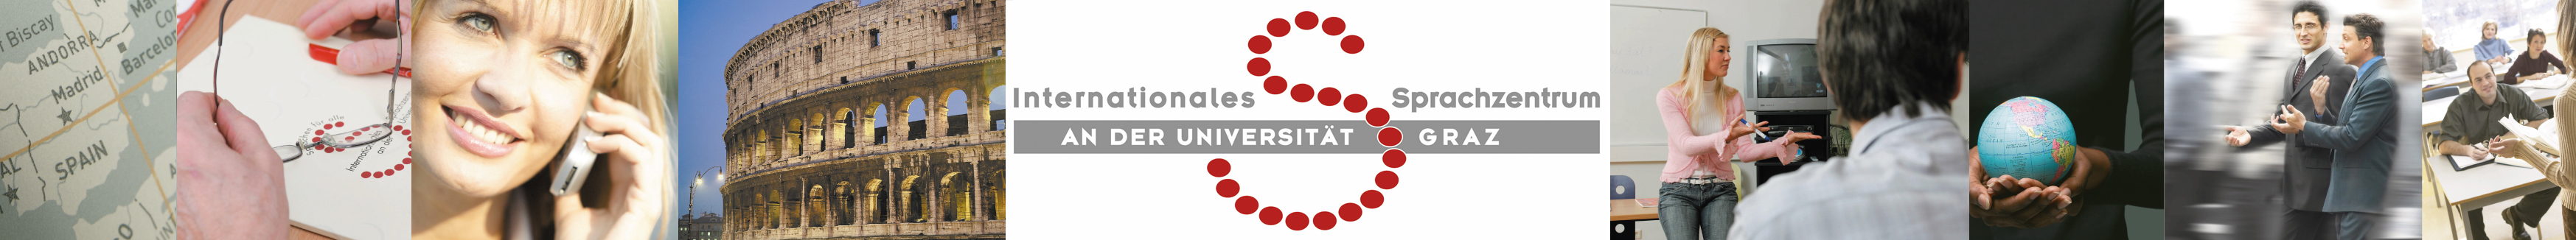 Internationales Sprachzentrum an der Universität Graz